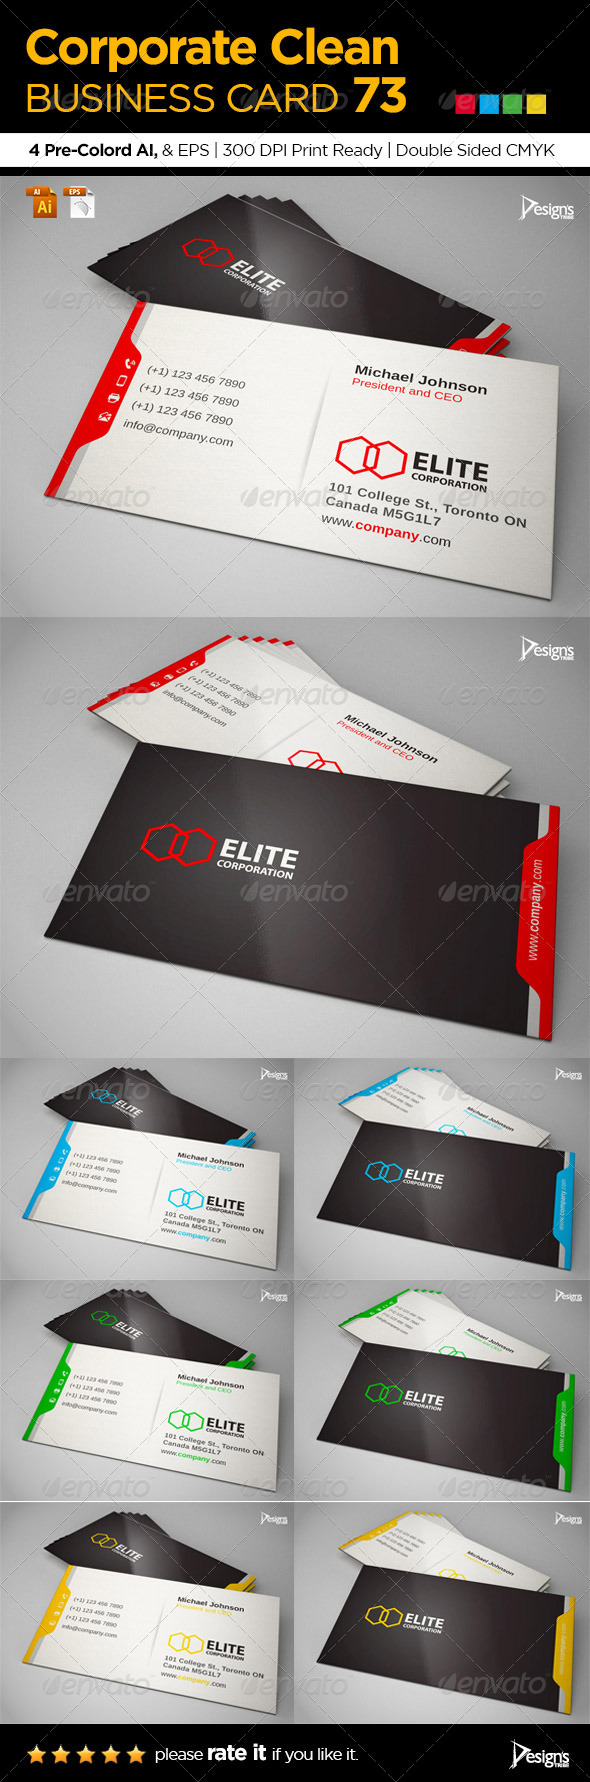 GraphicRiver Corporate Clean Business Card 73 6642948